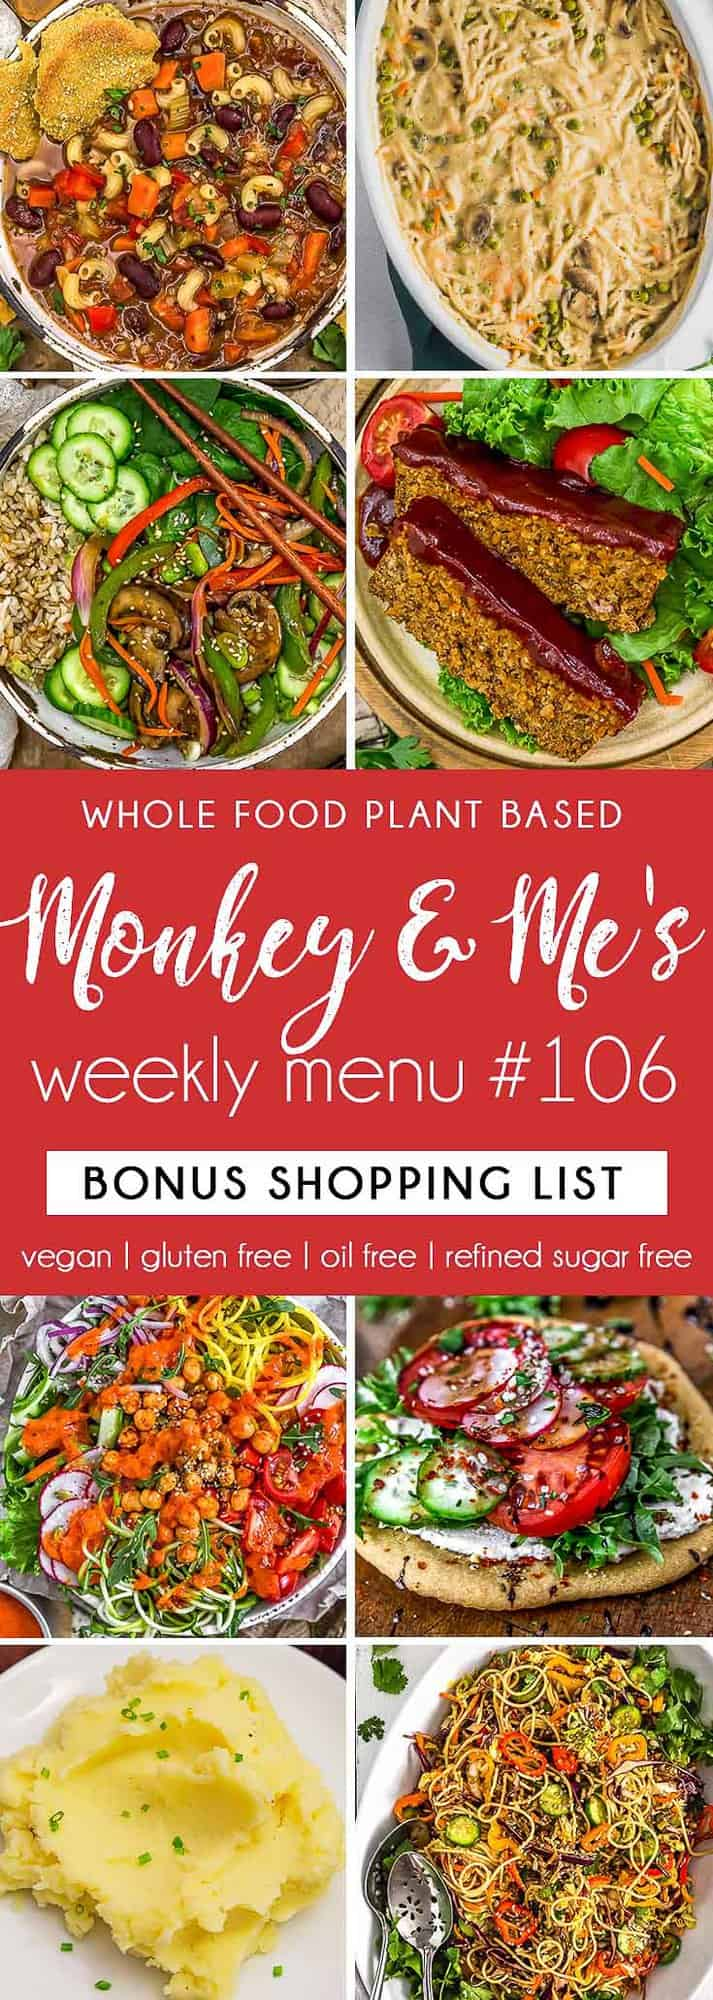 Monkey and Me's Menu 106 featuring 8 recipes